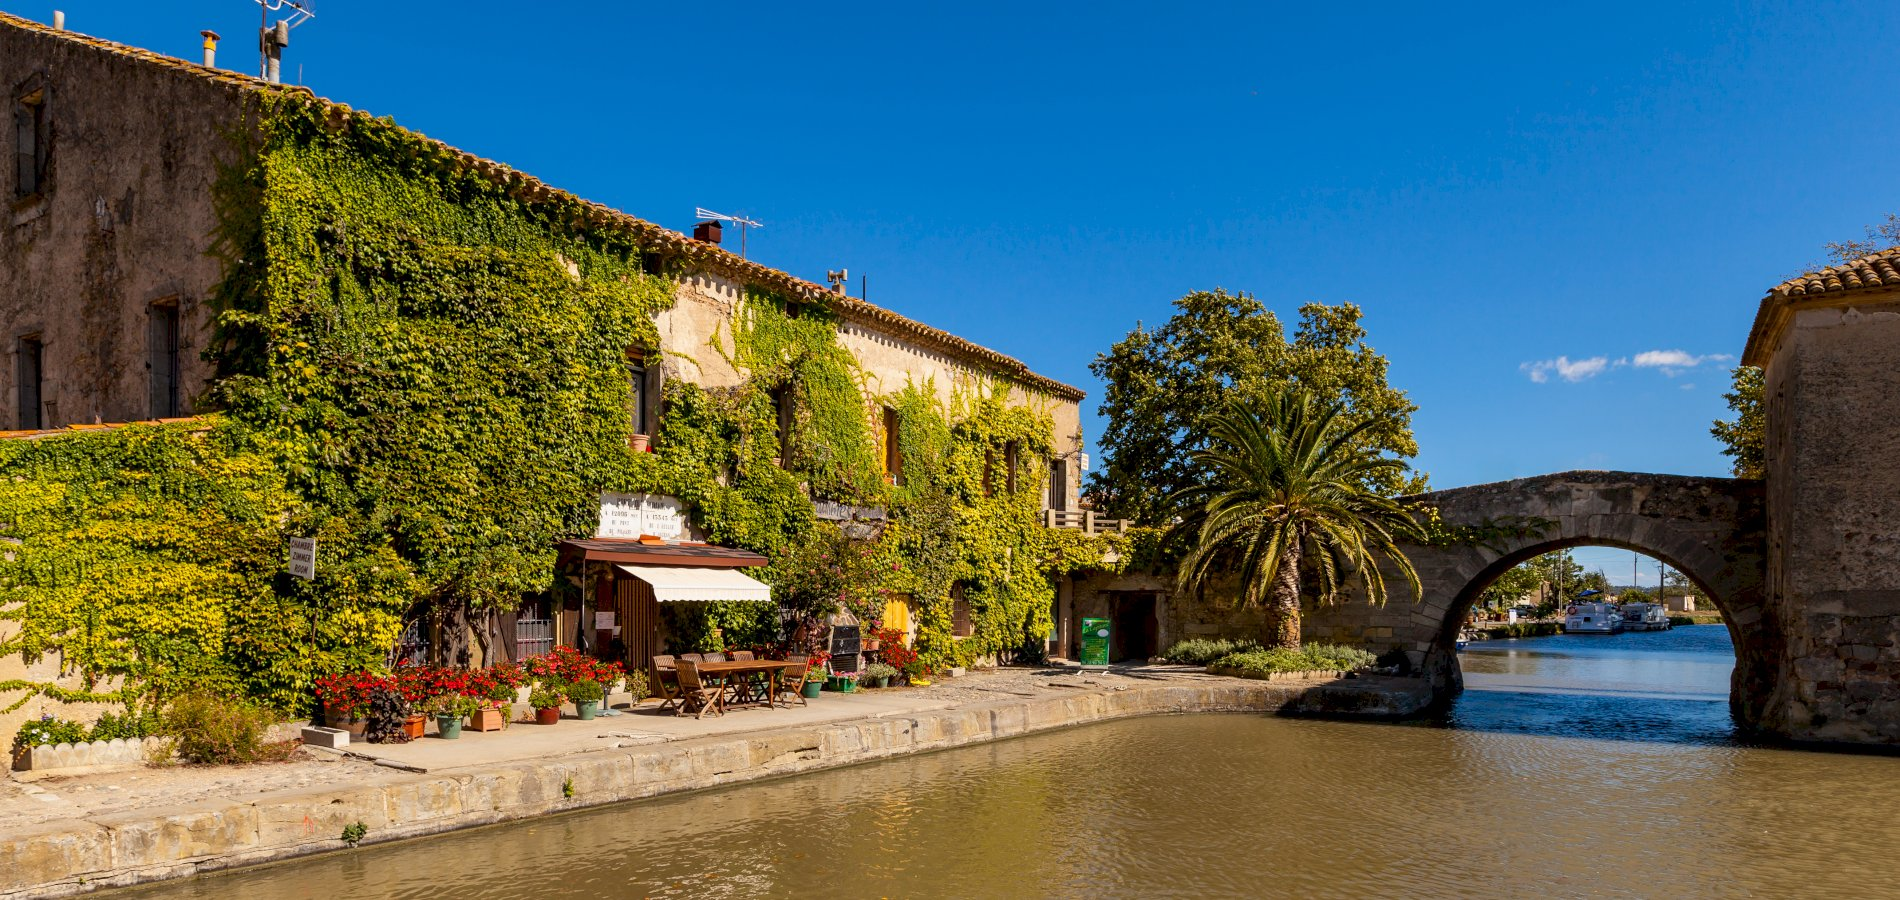 Ophorus Tours - From Toulouse to Argens Minervois Canal du Midi Private Transfer